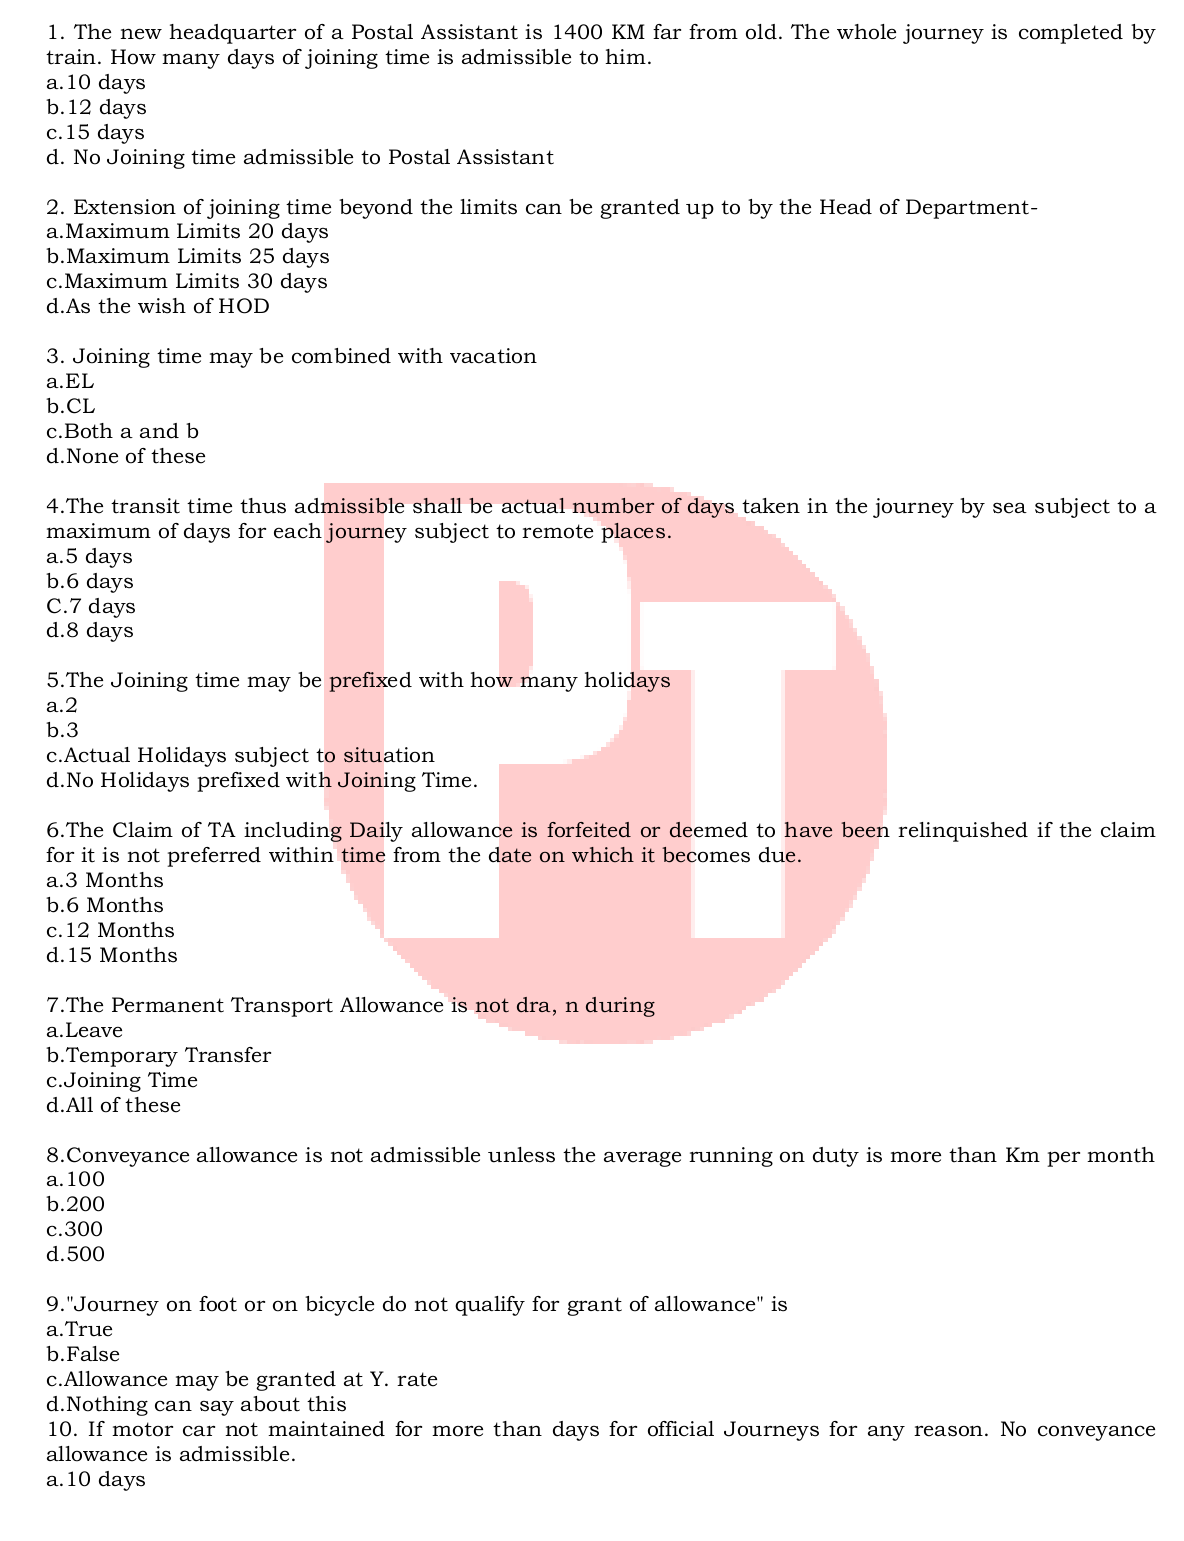 TA RULES MADE EASY - 20 MOST IMPORTANT MCQ - PoTools